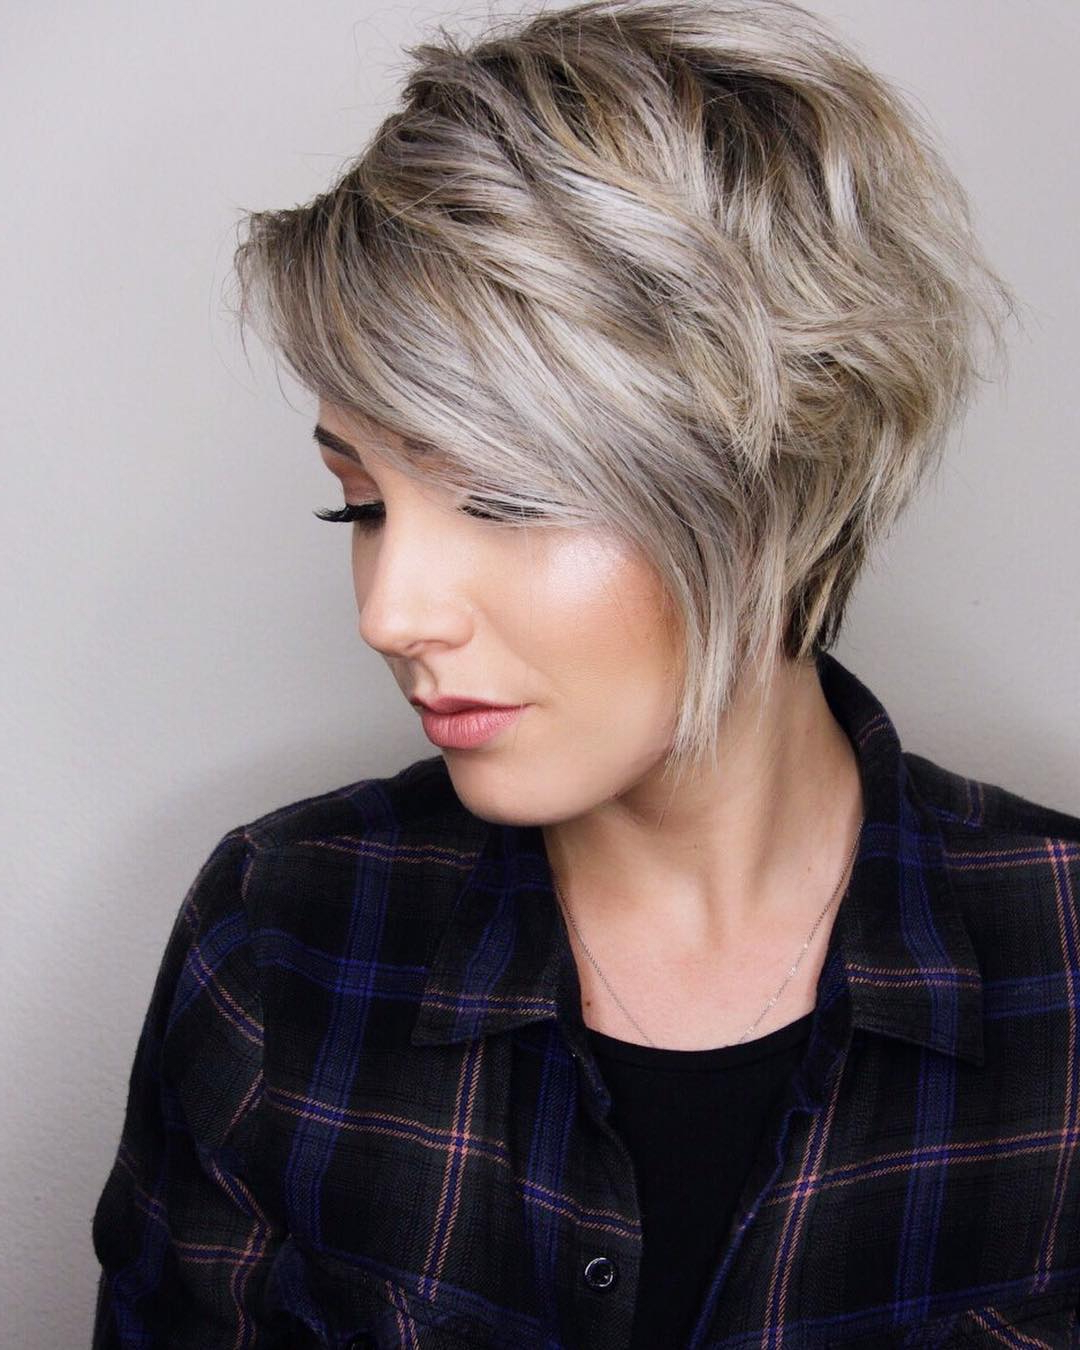 10 Trendy Layered Short Haircut Ideas 2019 – 'extra Special' Inspiration For Short Layered Hairstyles For Thick Hair (View 2 of 20)